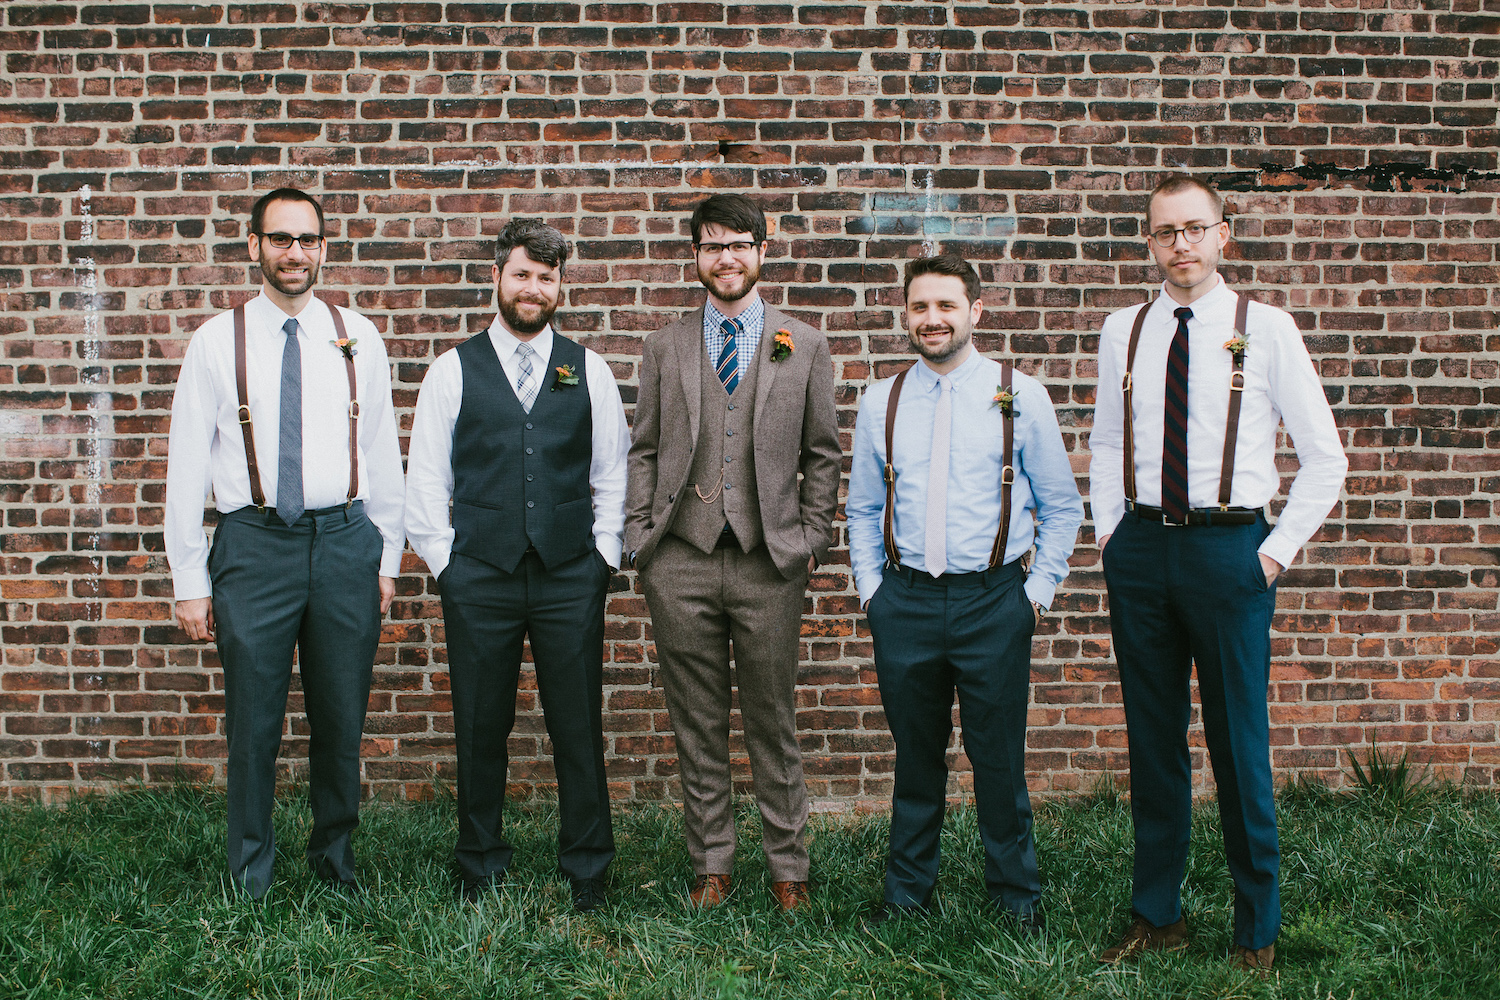 Full Aperture Floral & Corey Torpie Photography  - Brooklyn Wedding - 24.jpeg